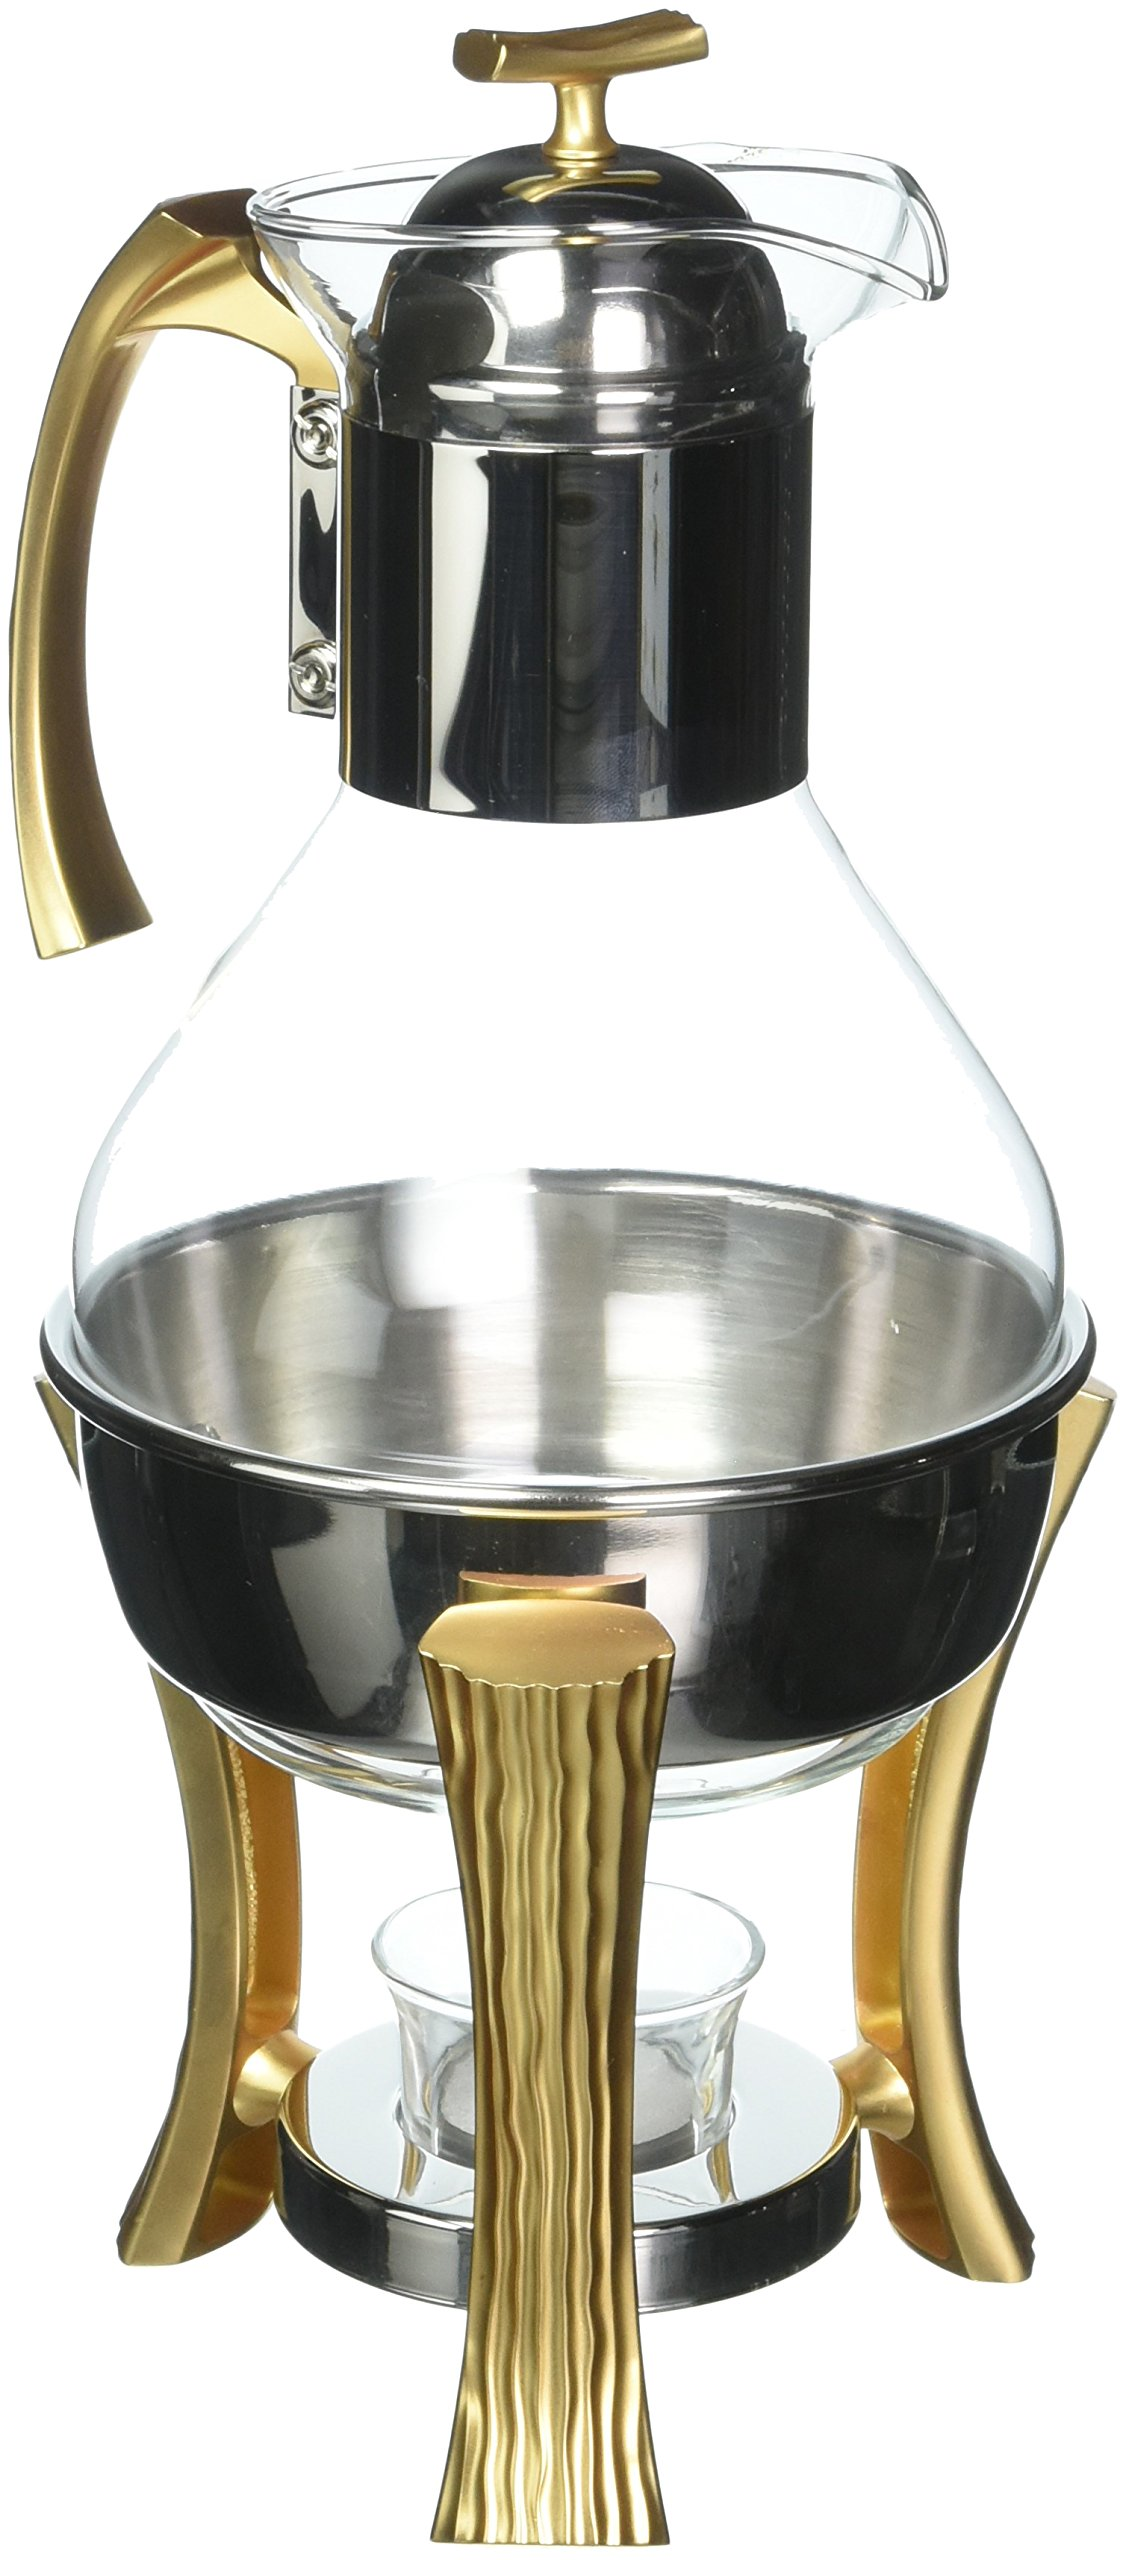 18/10 Stainless Steel Matte Gold NG215 beverage-warmers, 13.5'' Tall, Gold